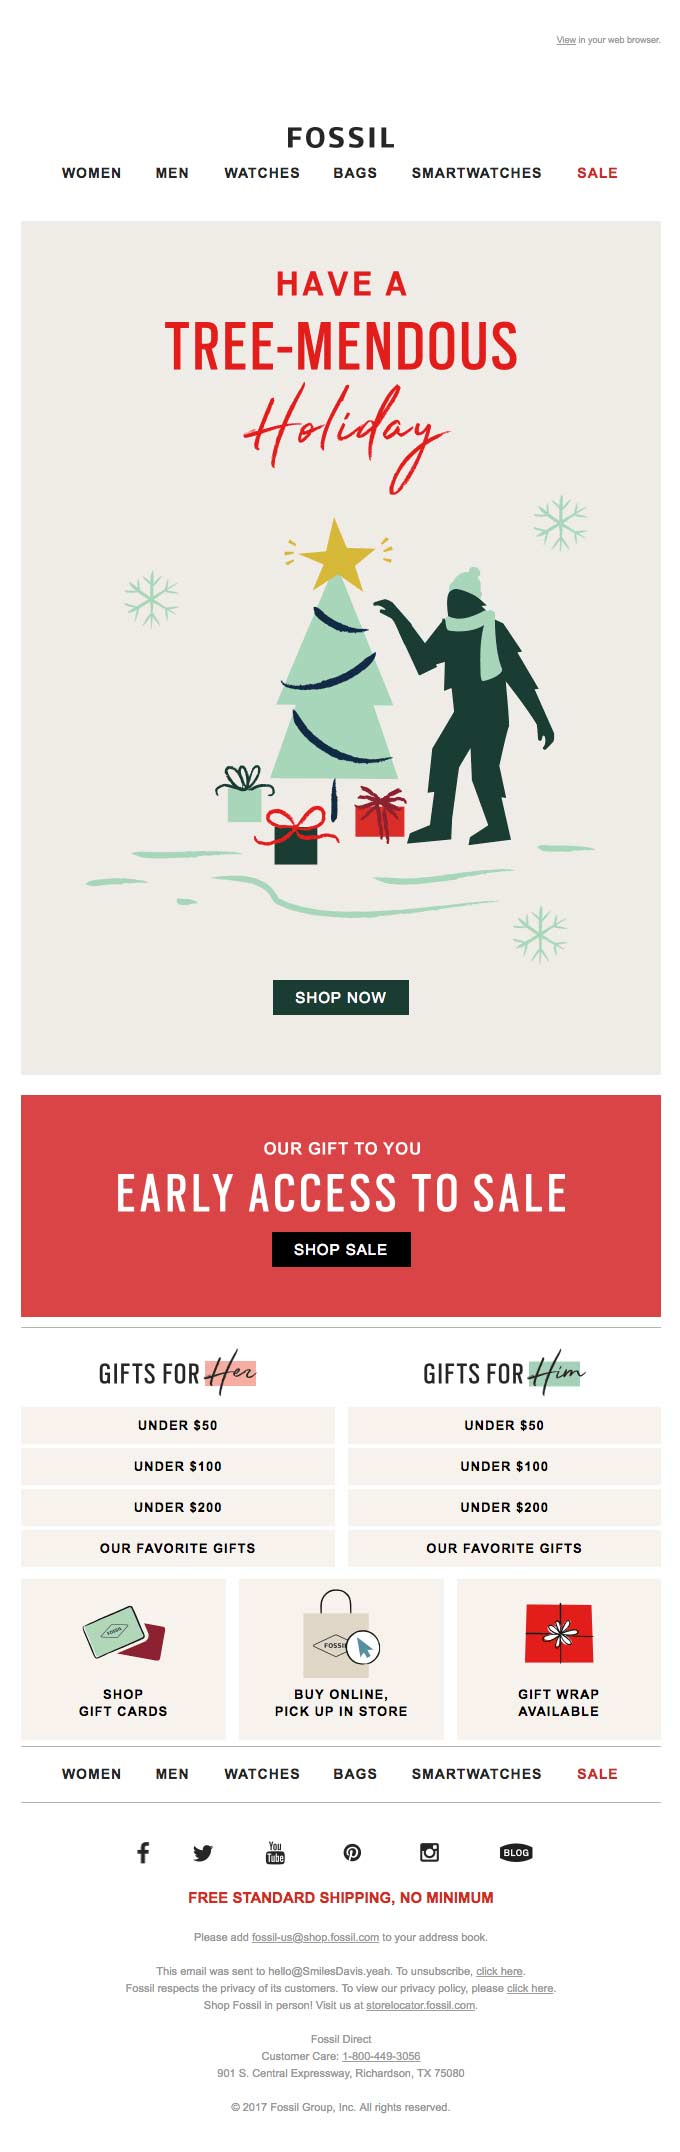 Heavily designed e-commerce email for a frashion brand